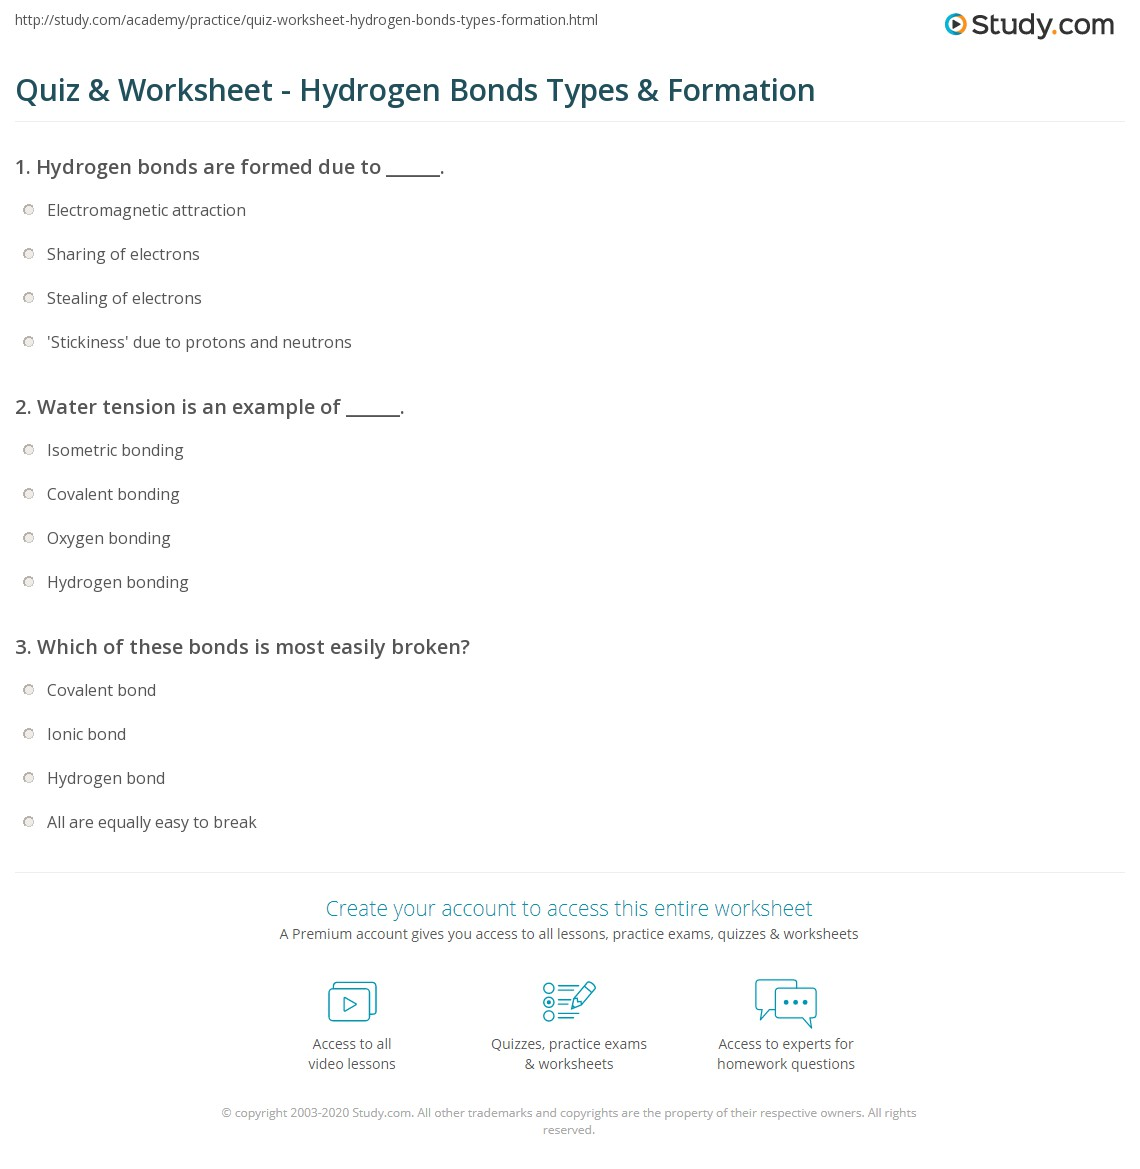 Quiz & Worksheet Hydrogen Bonds Types & Formation